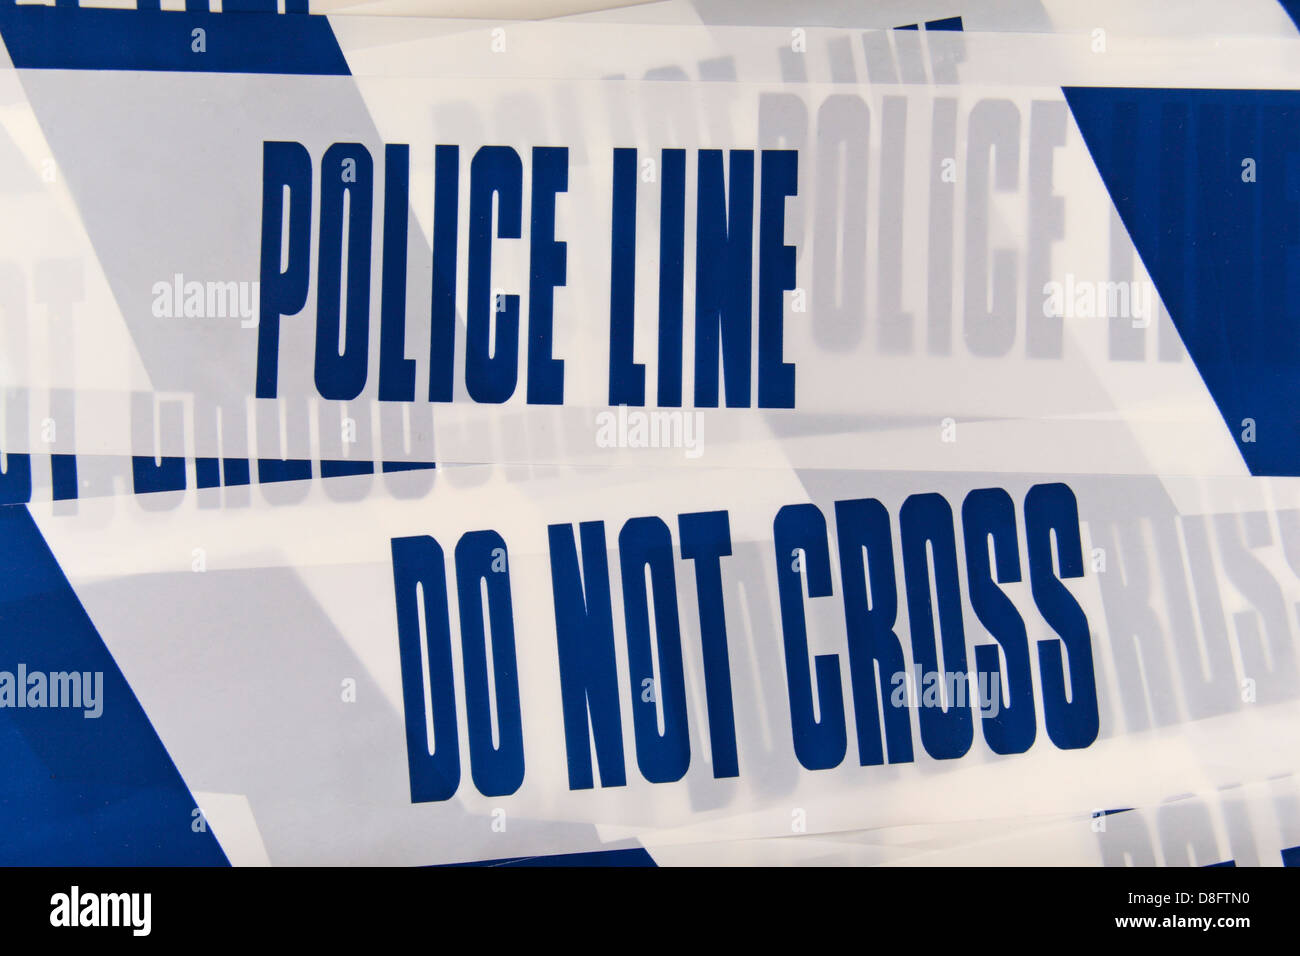 Police Line (Do Not Cross) tape from the United Kingdom (UK). May 2013 - Stock Image